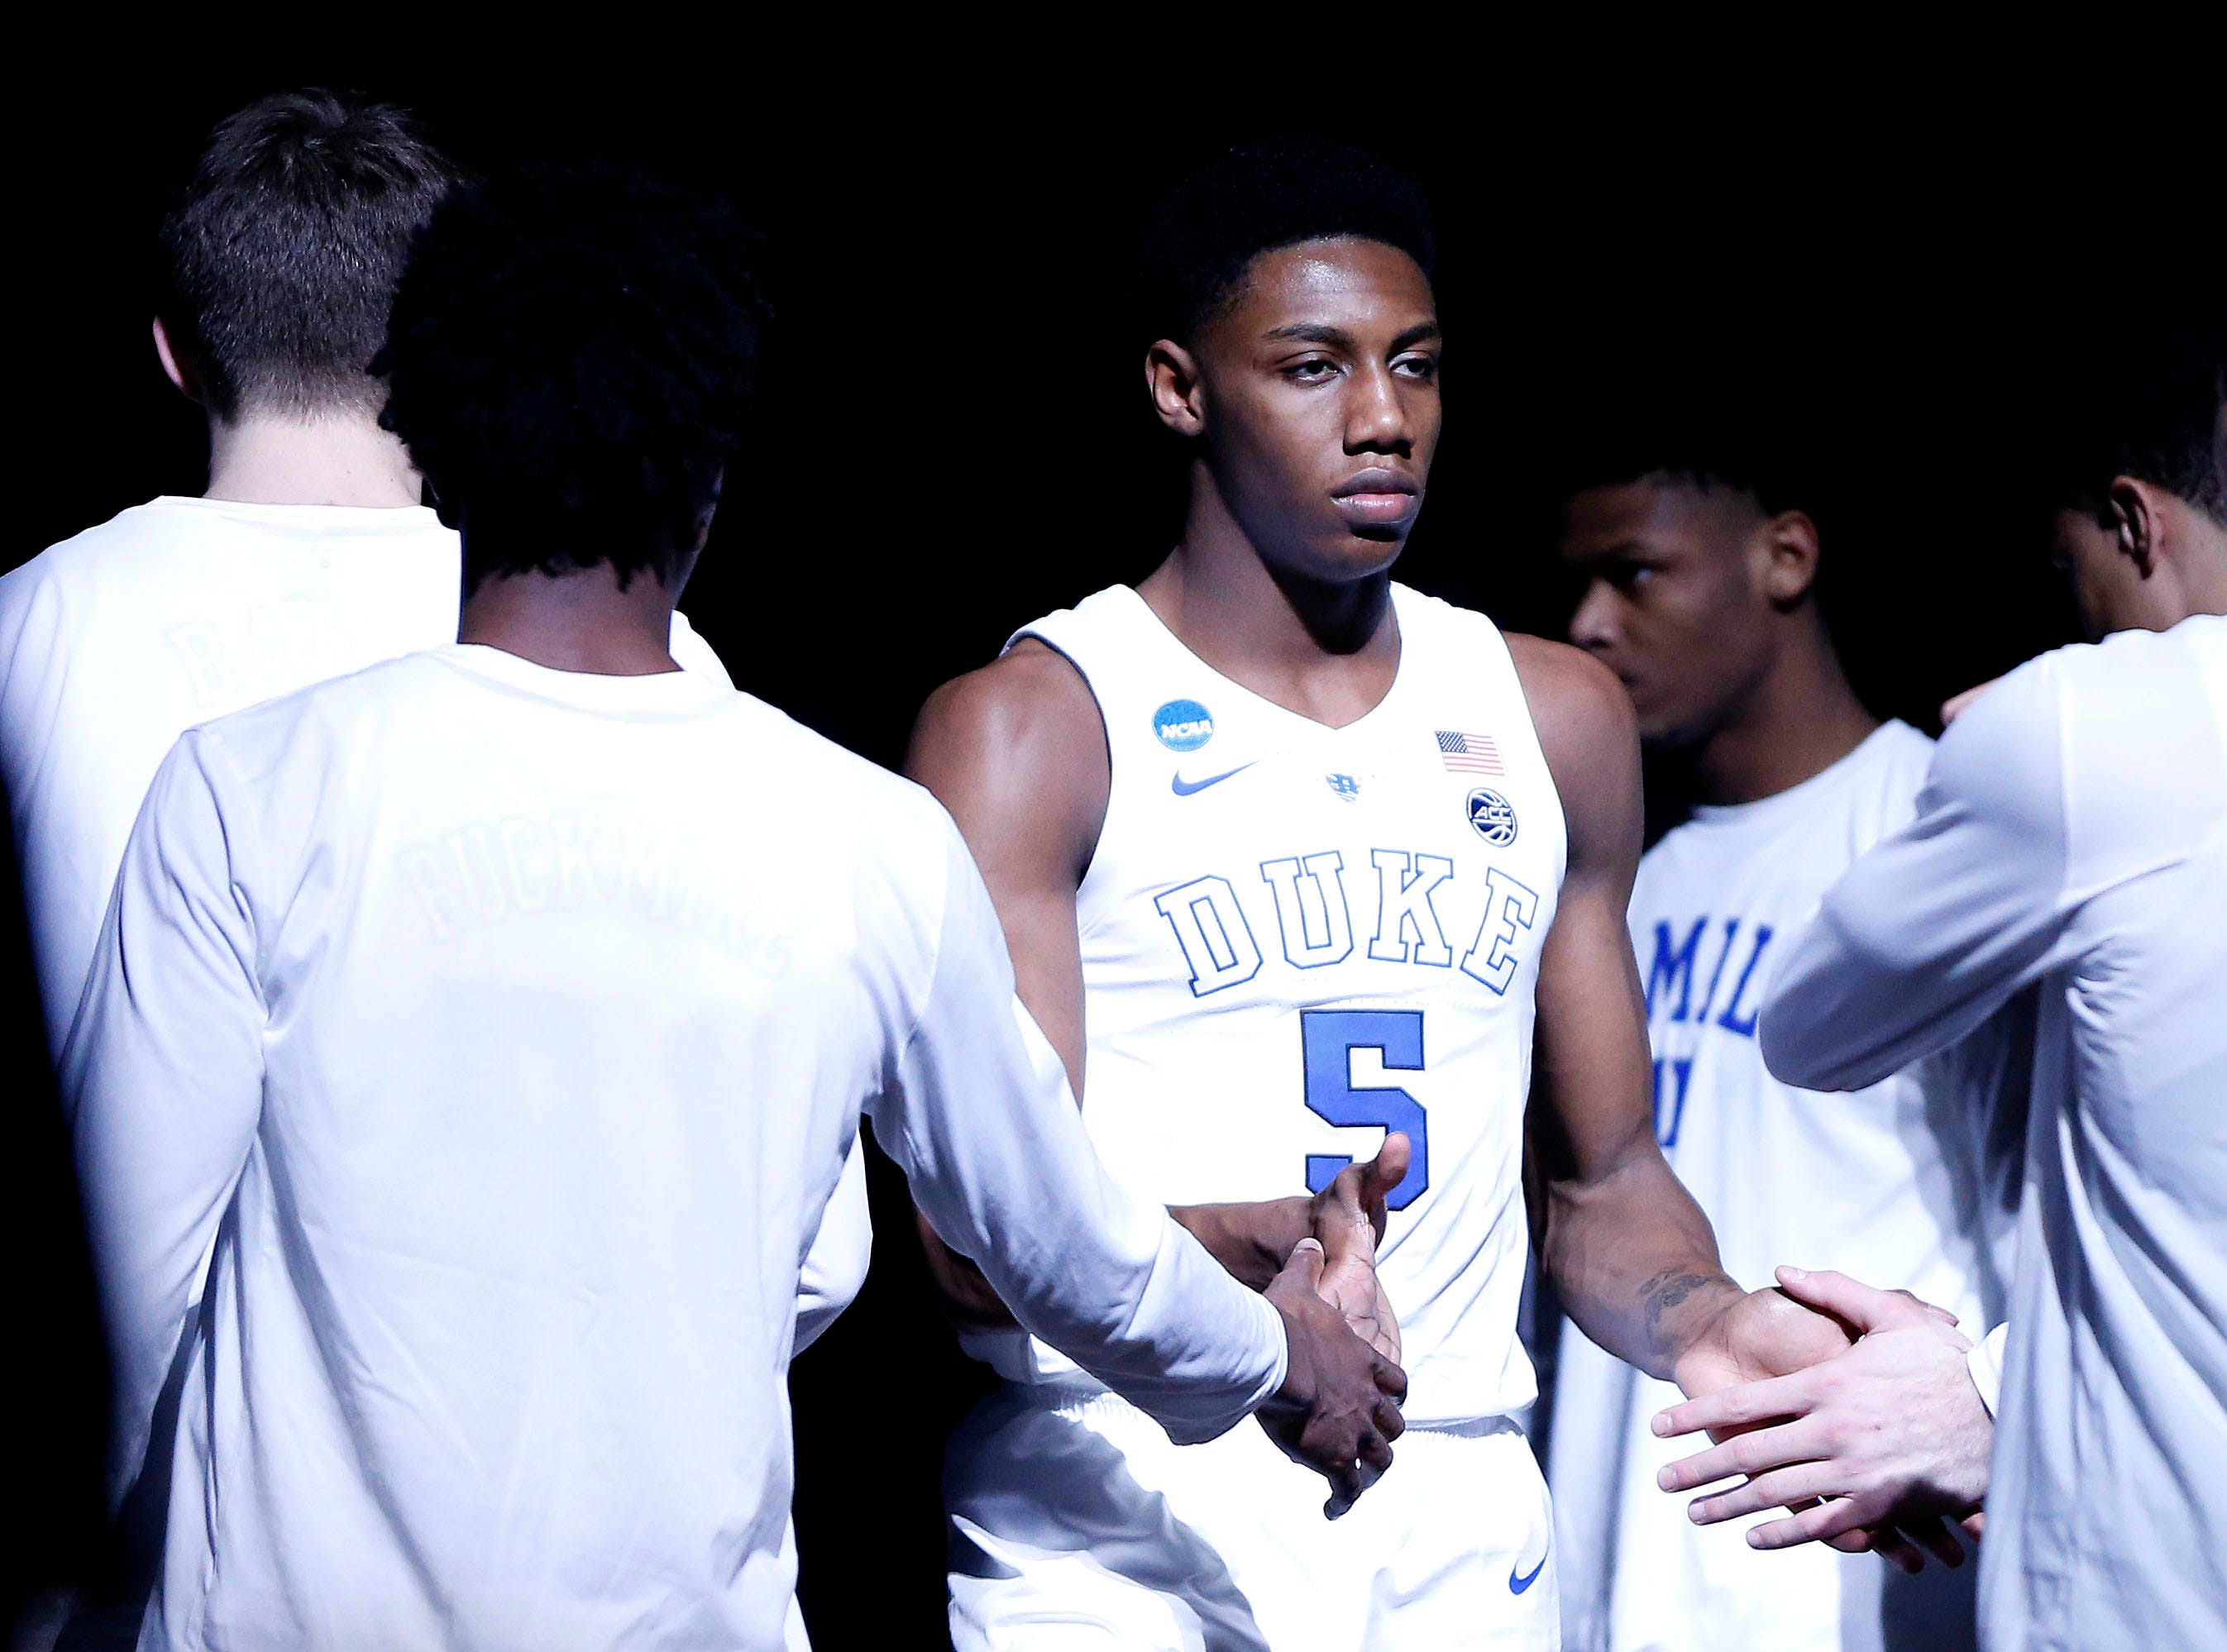 Duke Blue Devils forward RJ Barrett (5) is introduced before the against the Michigan State Spartans in the championship game of the east regional of the 2019 NCAA Tournament at Capital One Arena.